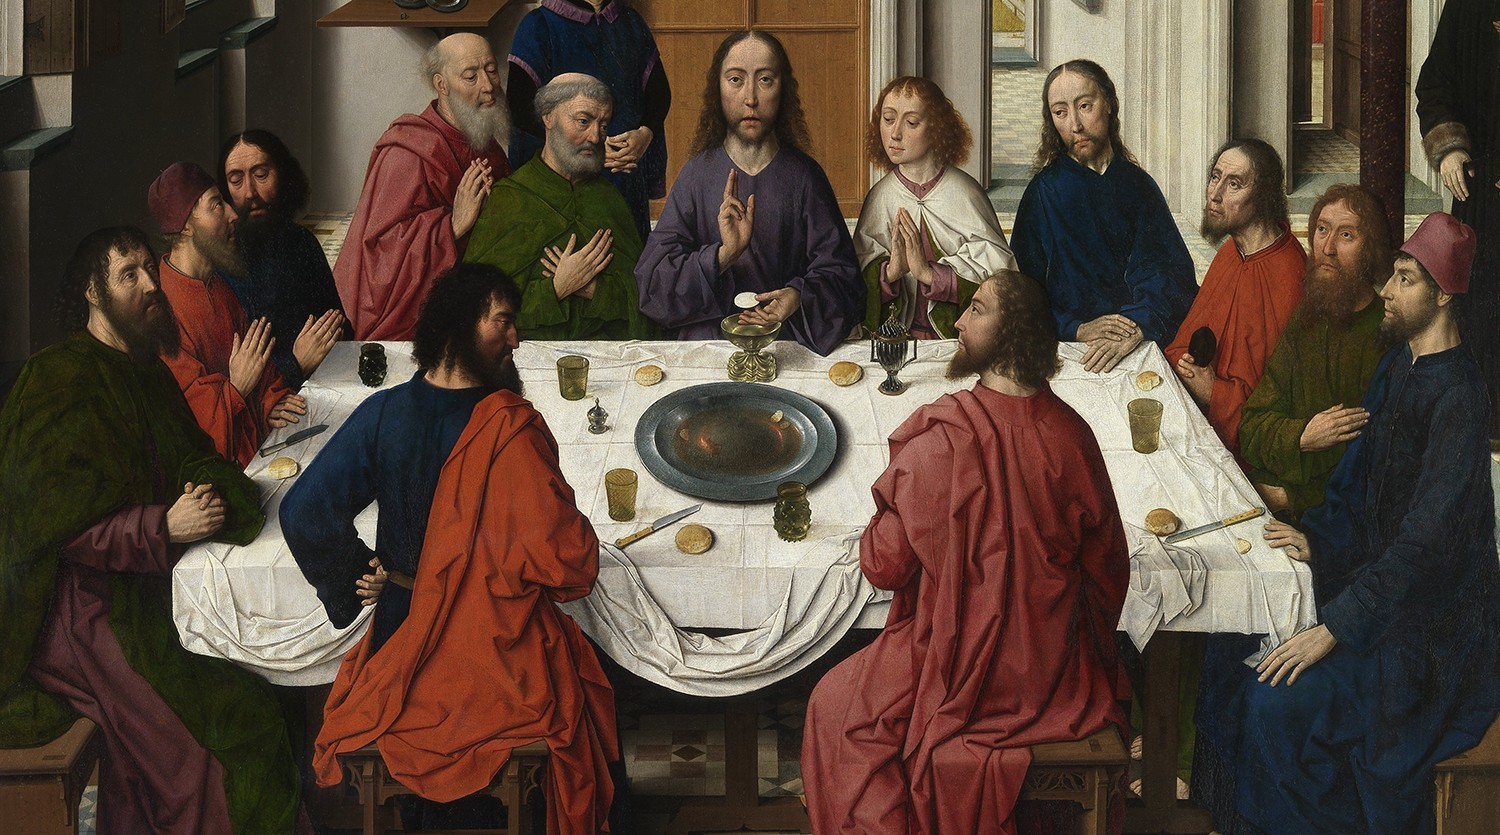 How to Read Paintings: The Last Supper by Dieric Bouts ...